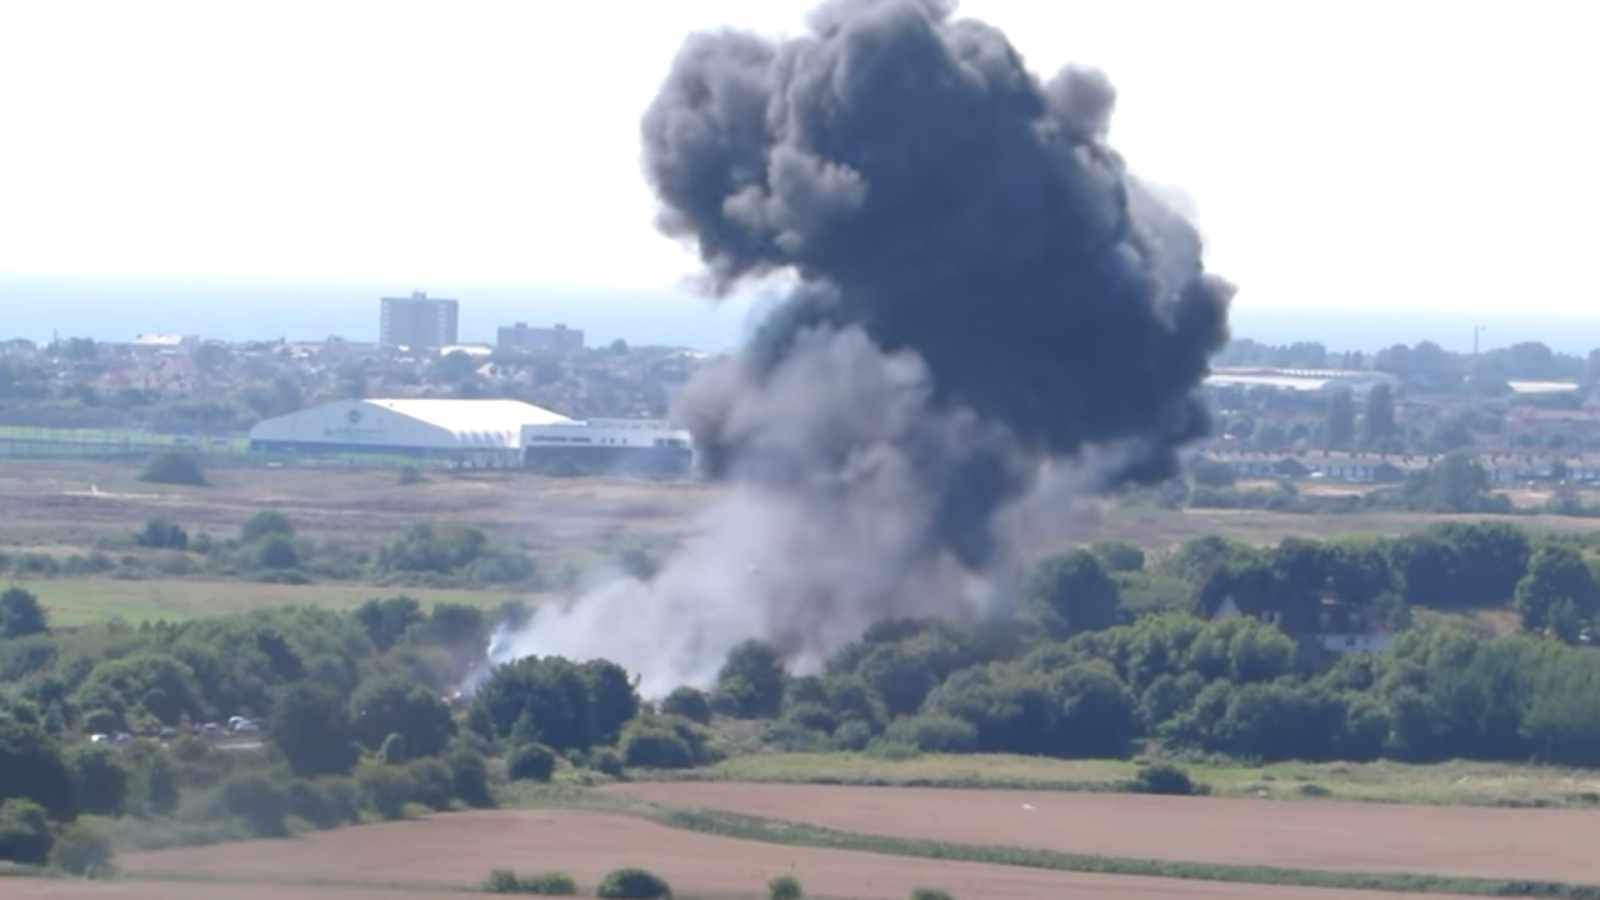 Plane crashes near the Shoreham airshow